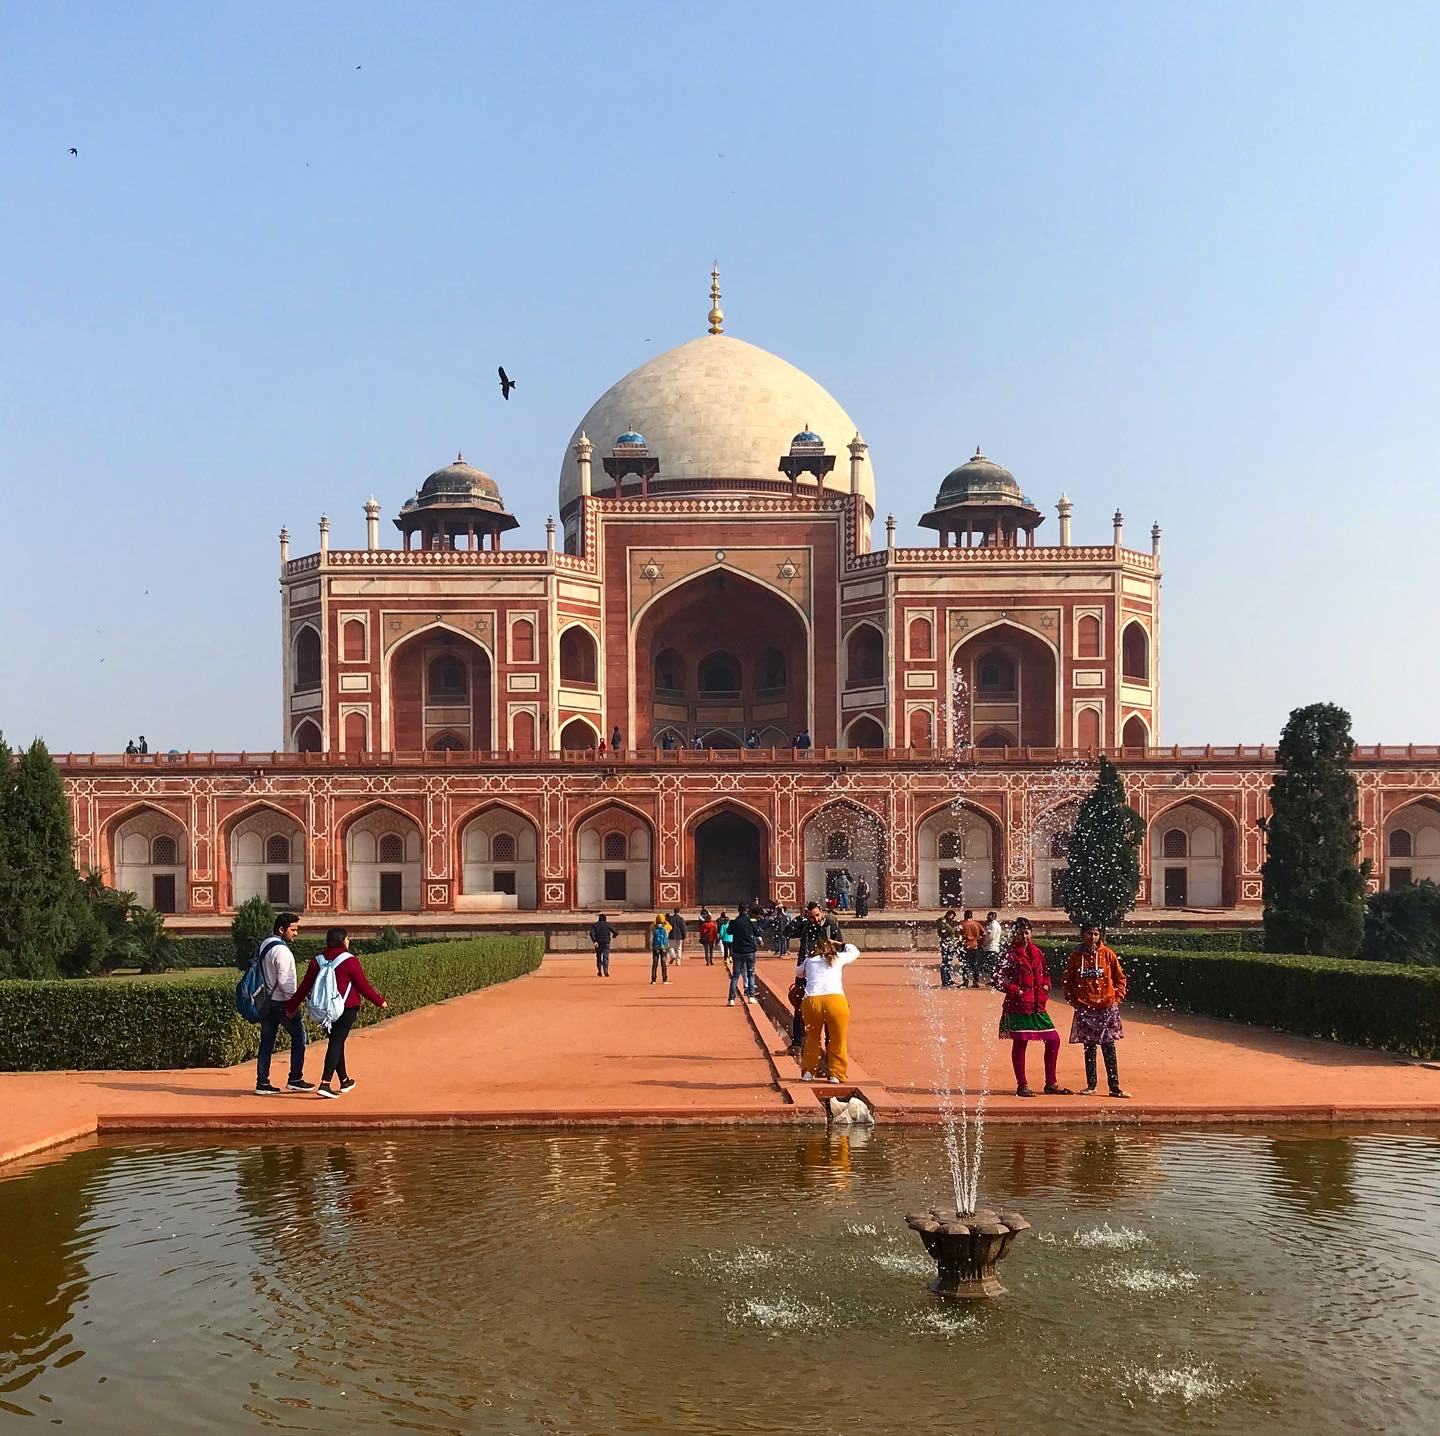 Front view of Humayun's tomb with the fountain and similar architecture as the Taj mahal